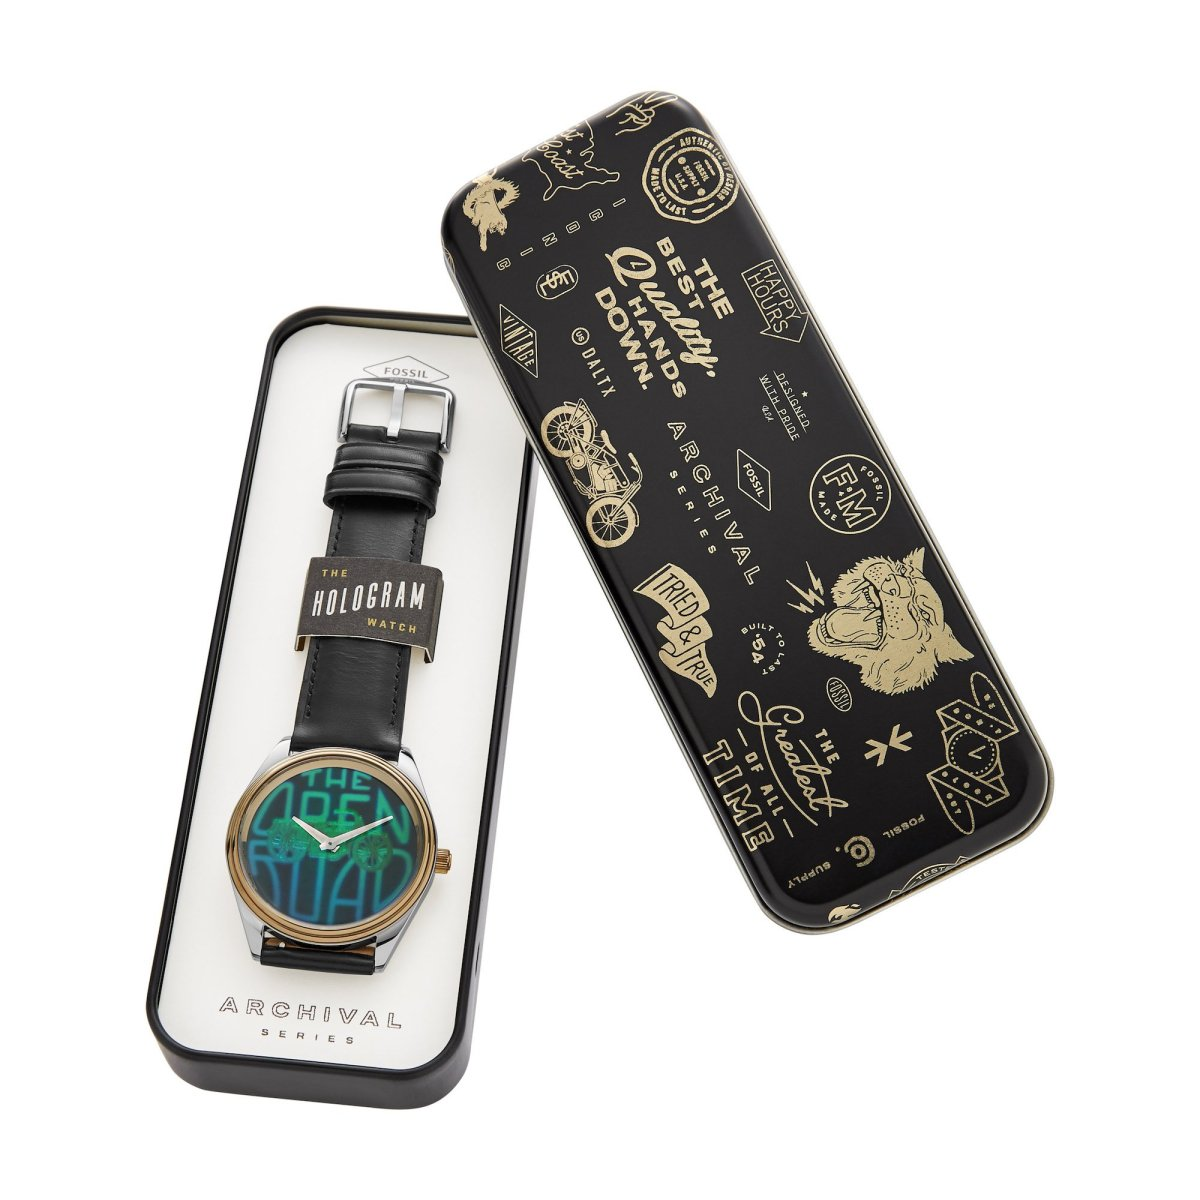 Fossil Hologram Watch, edizione limitata per la Archival Series